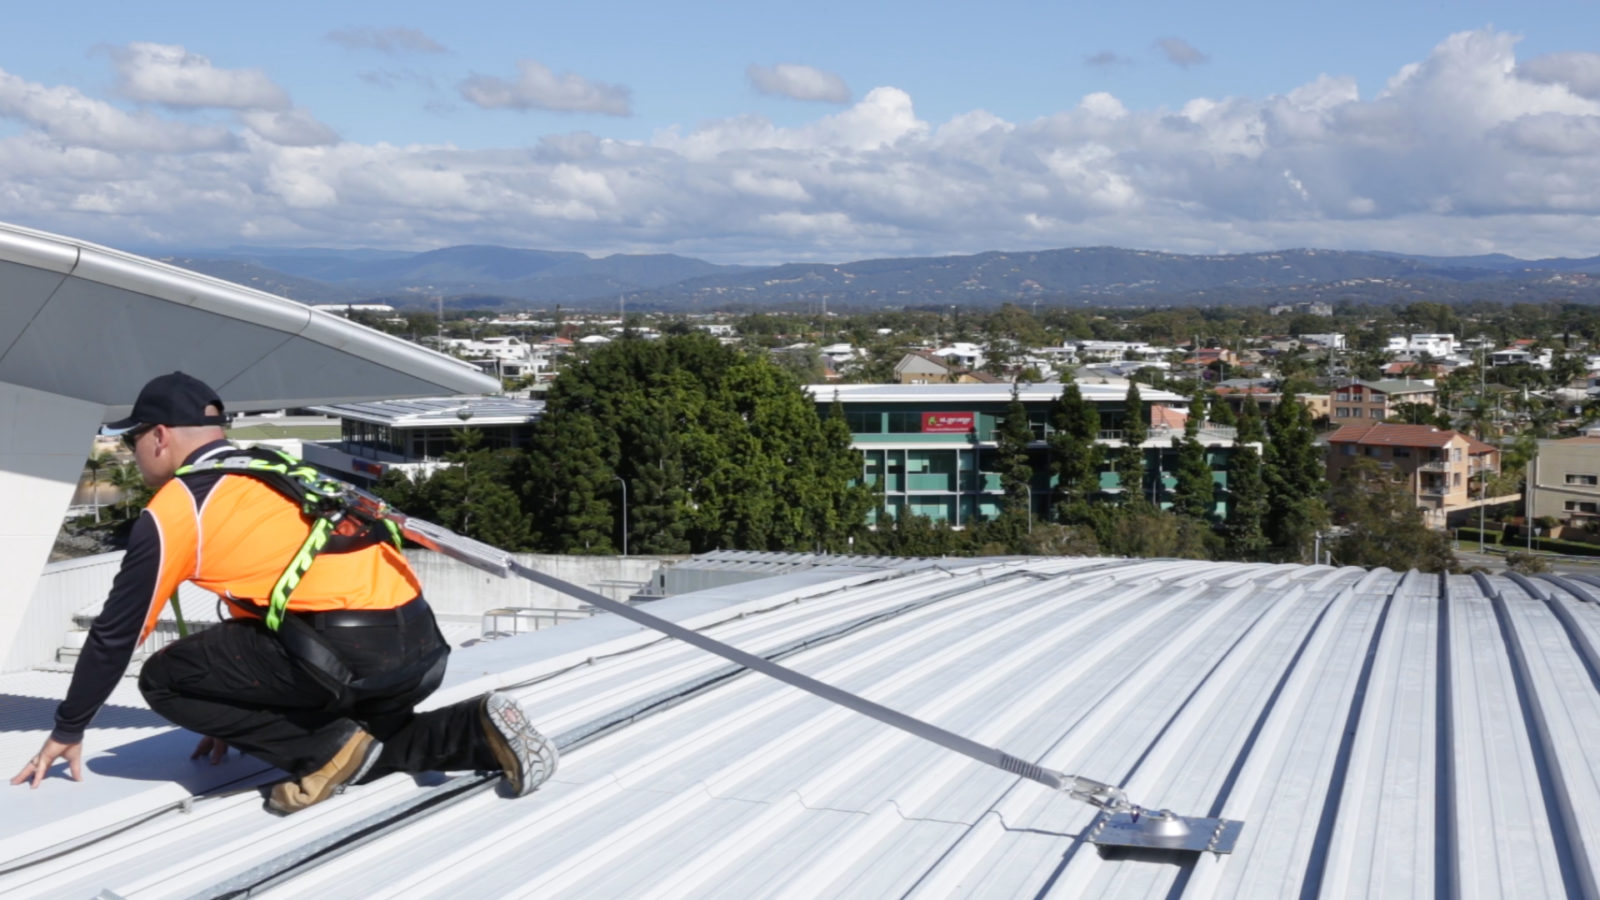 Height Safety Roof Anchor Points Safe At Heights Brisbane Queensland 19